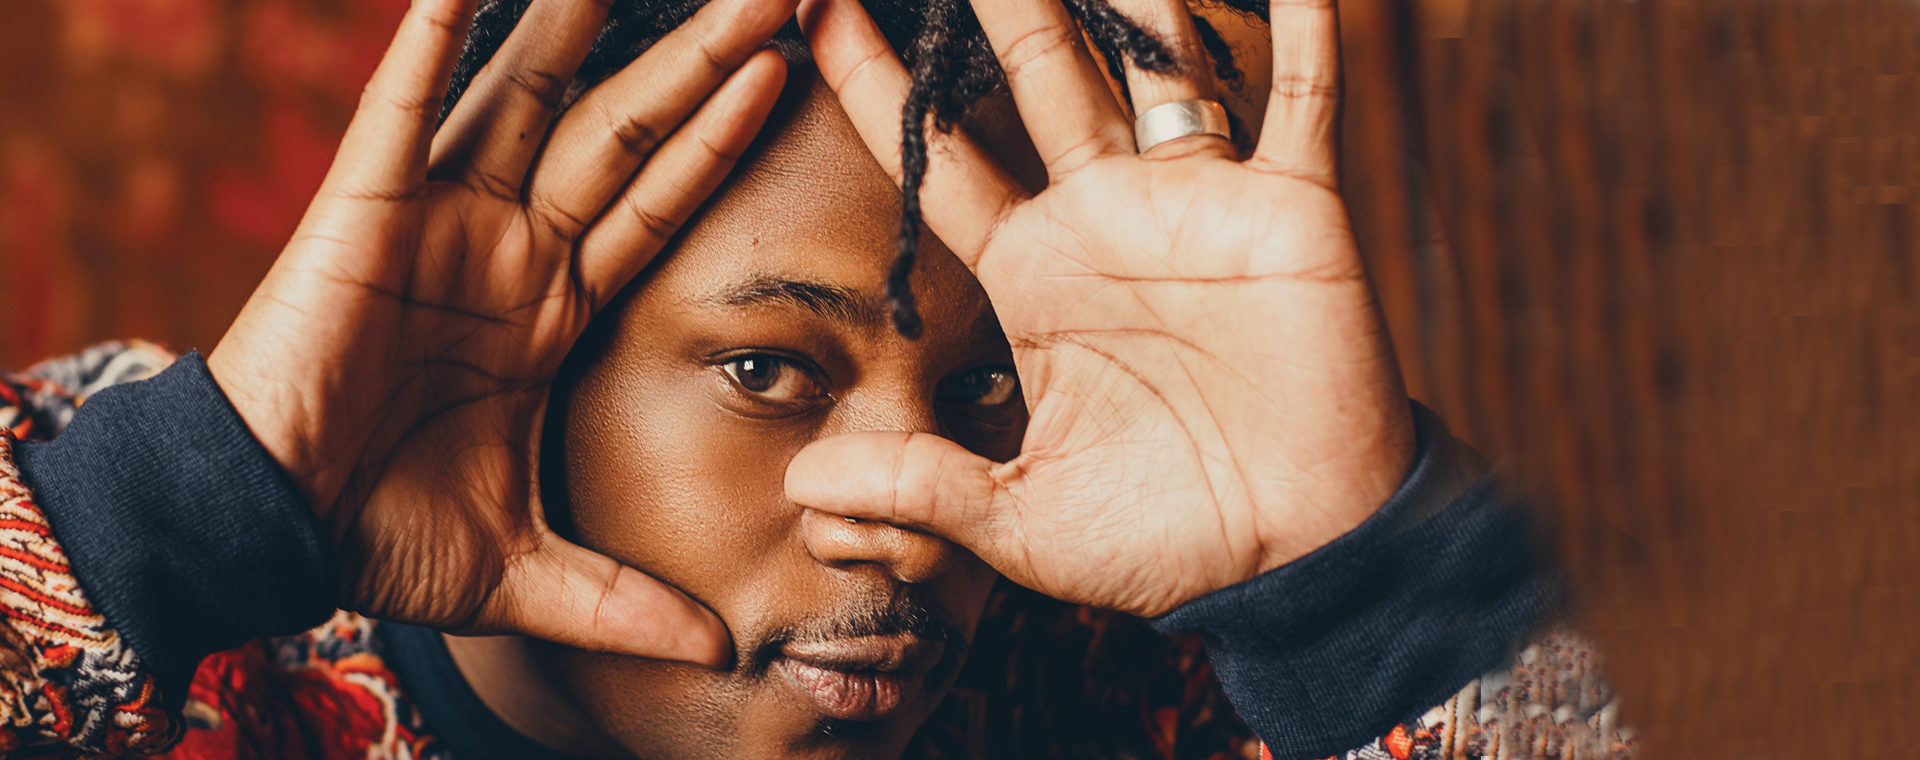 LATEST ISSUE <br><b>Open Mike Eagle</b></br>